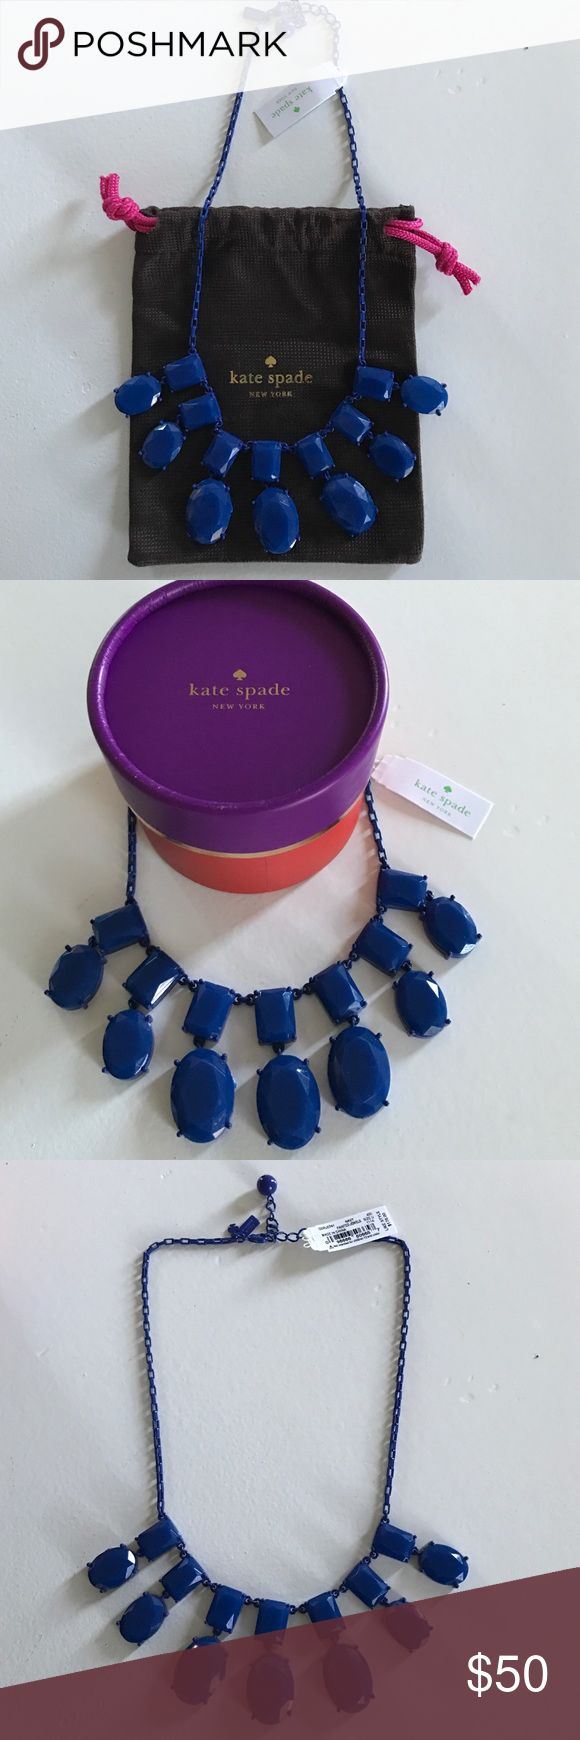 Kate Spade Navy Necklace Navy Kate Spade necklace, bag and box included kate spade Jewelry Necklaces